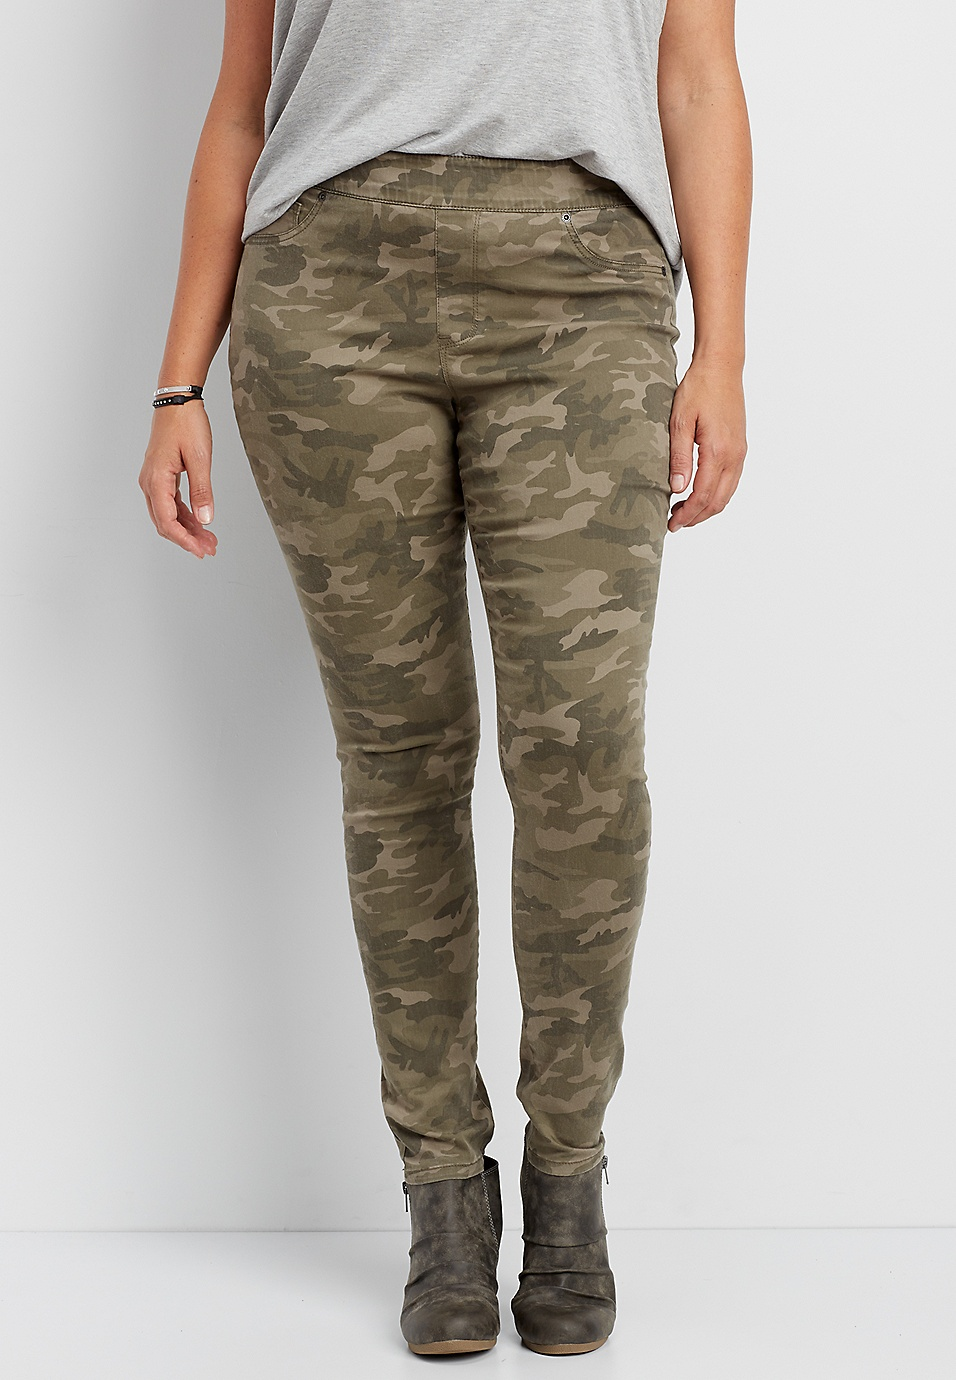 f00f2d5ead536 DenimFlex™ plus size pull on lean jegging in camo print | maurices